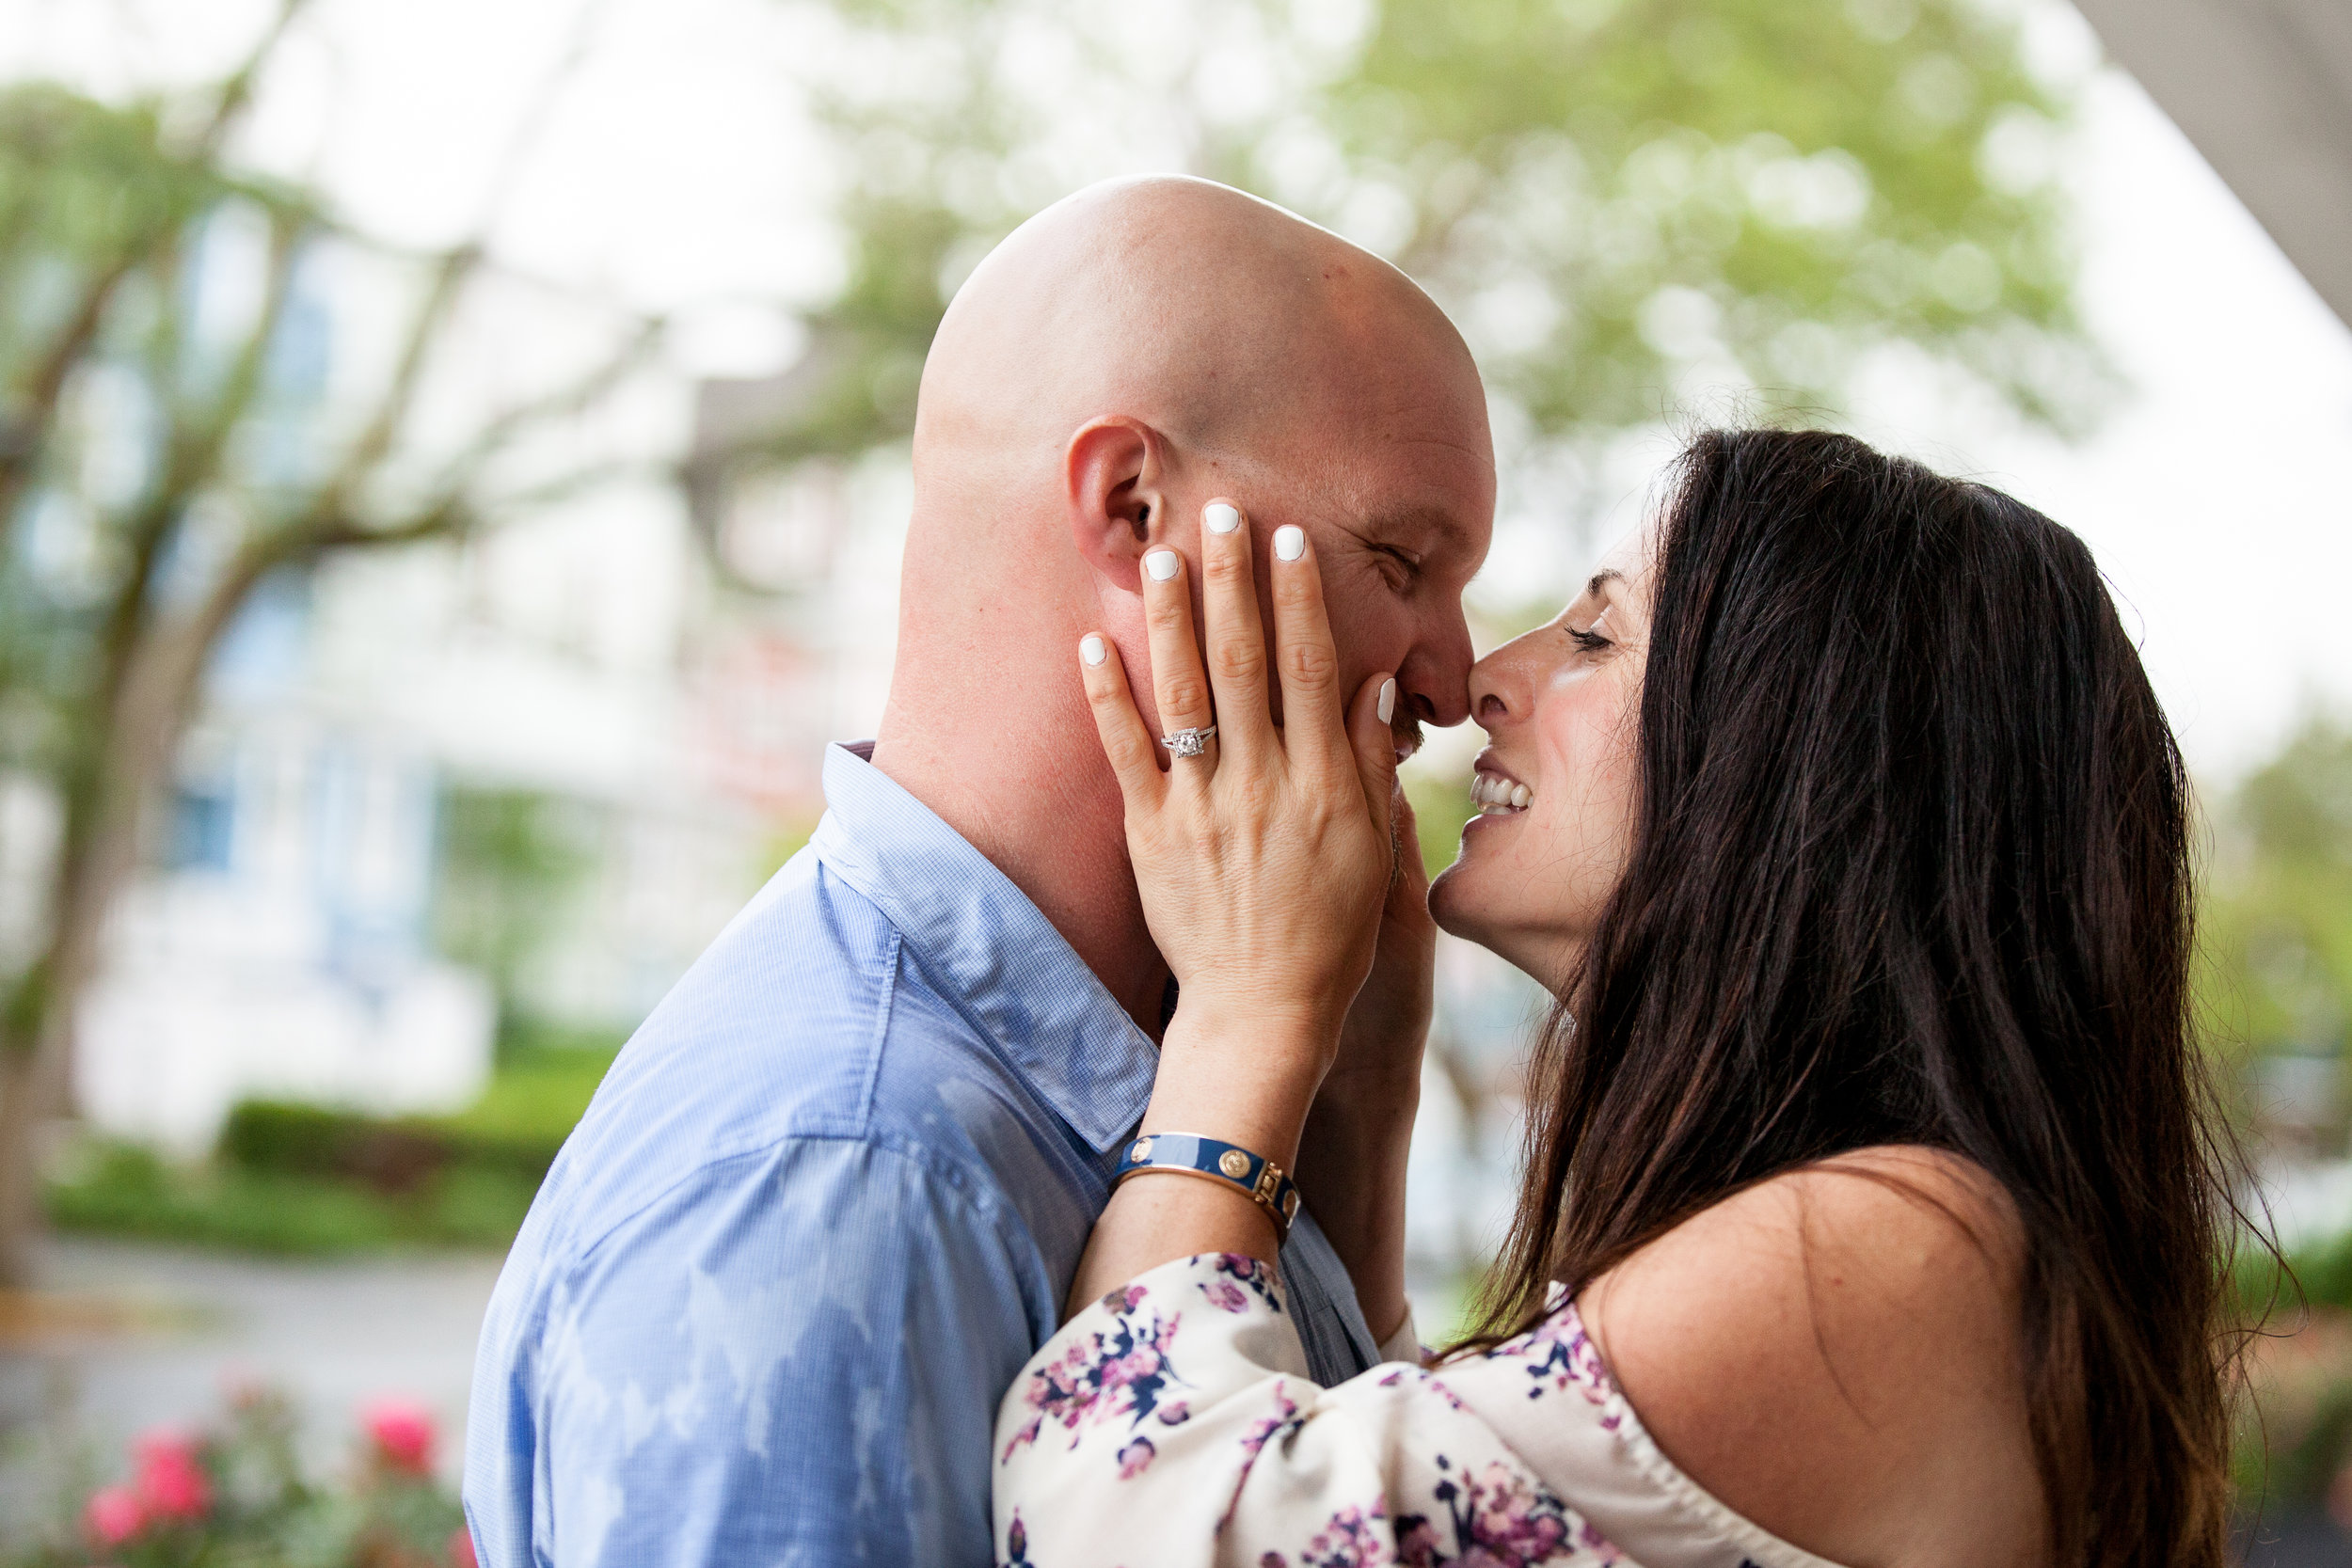 StaceyandJohnEngagementPrints-71.jpg